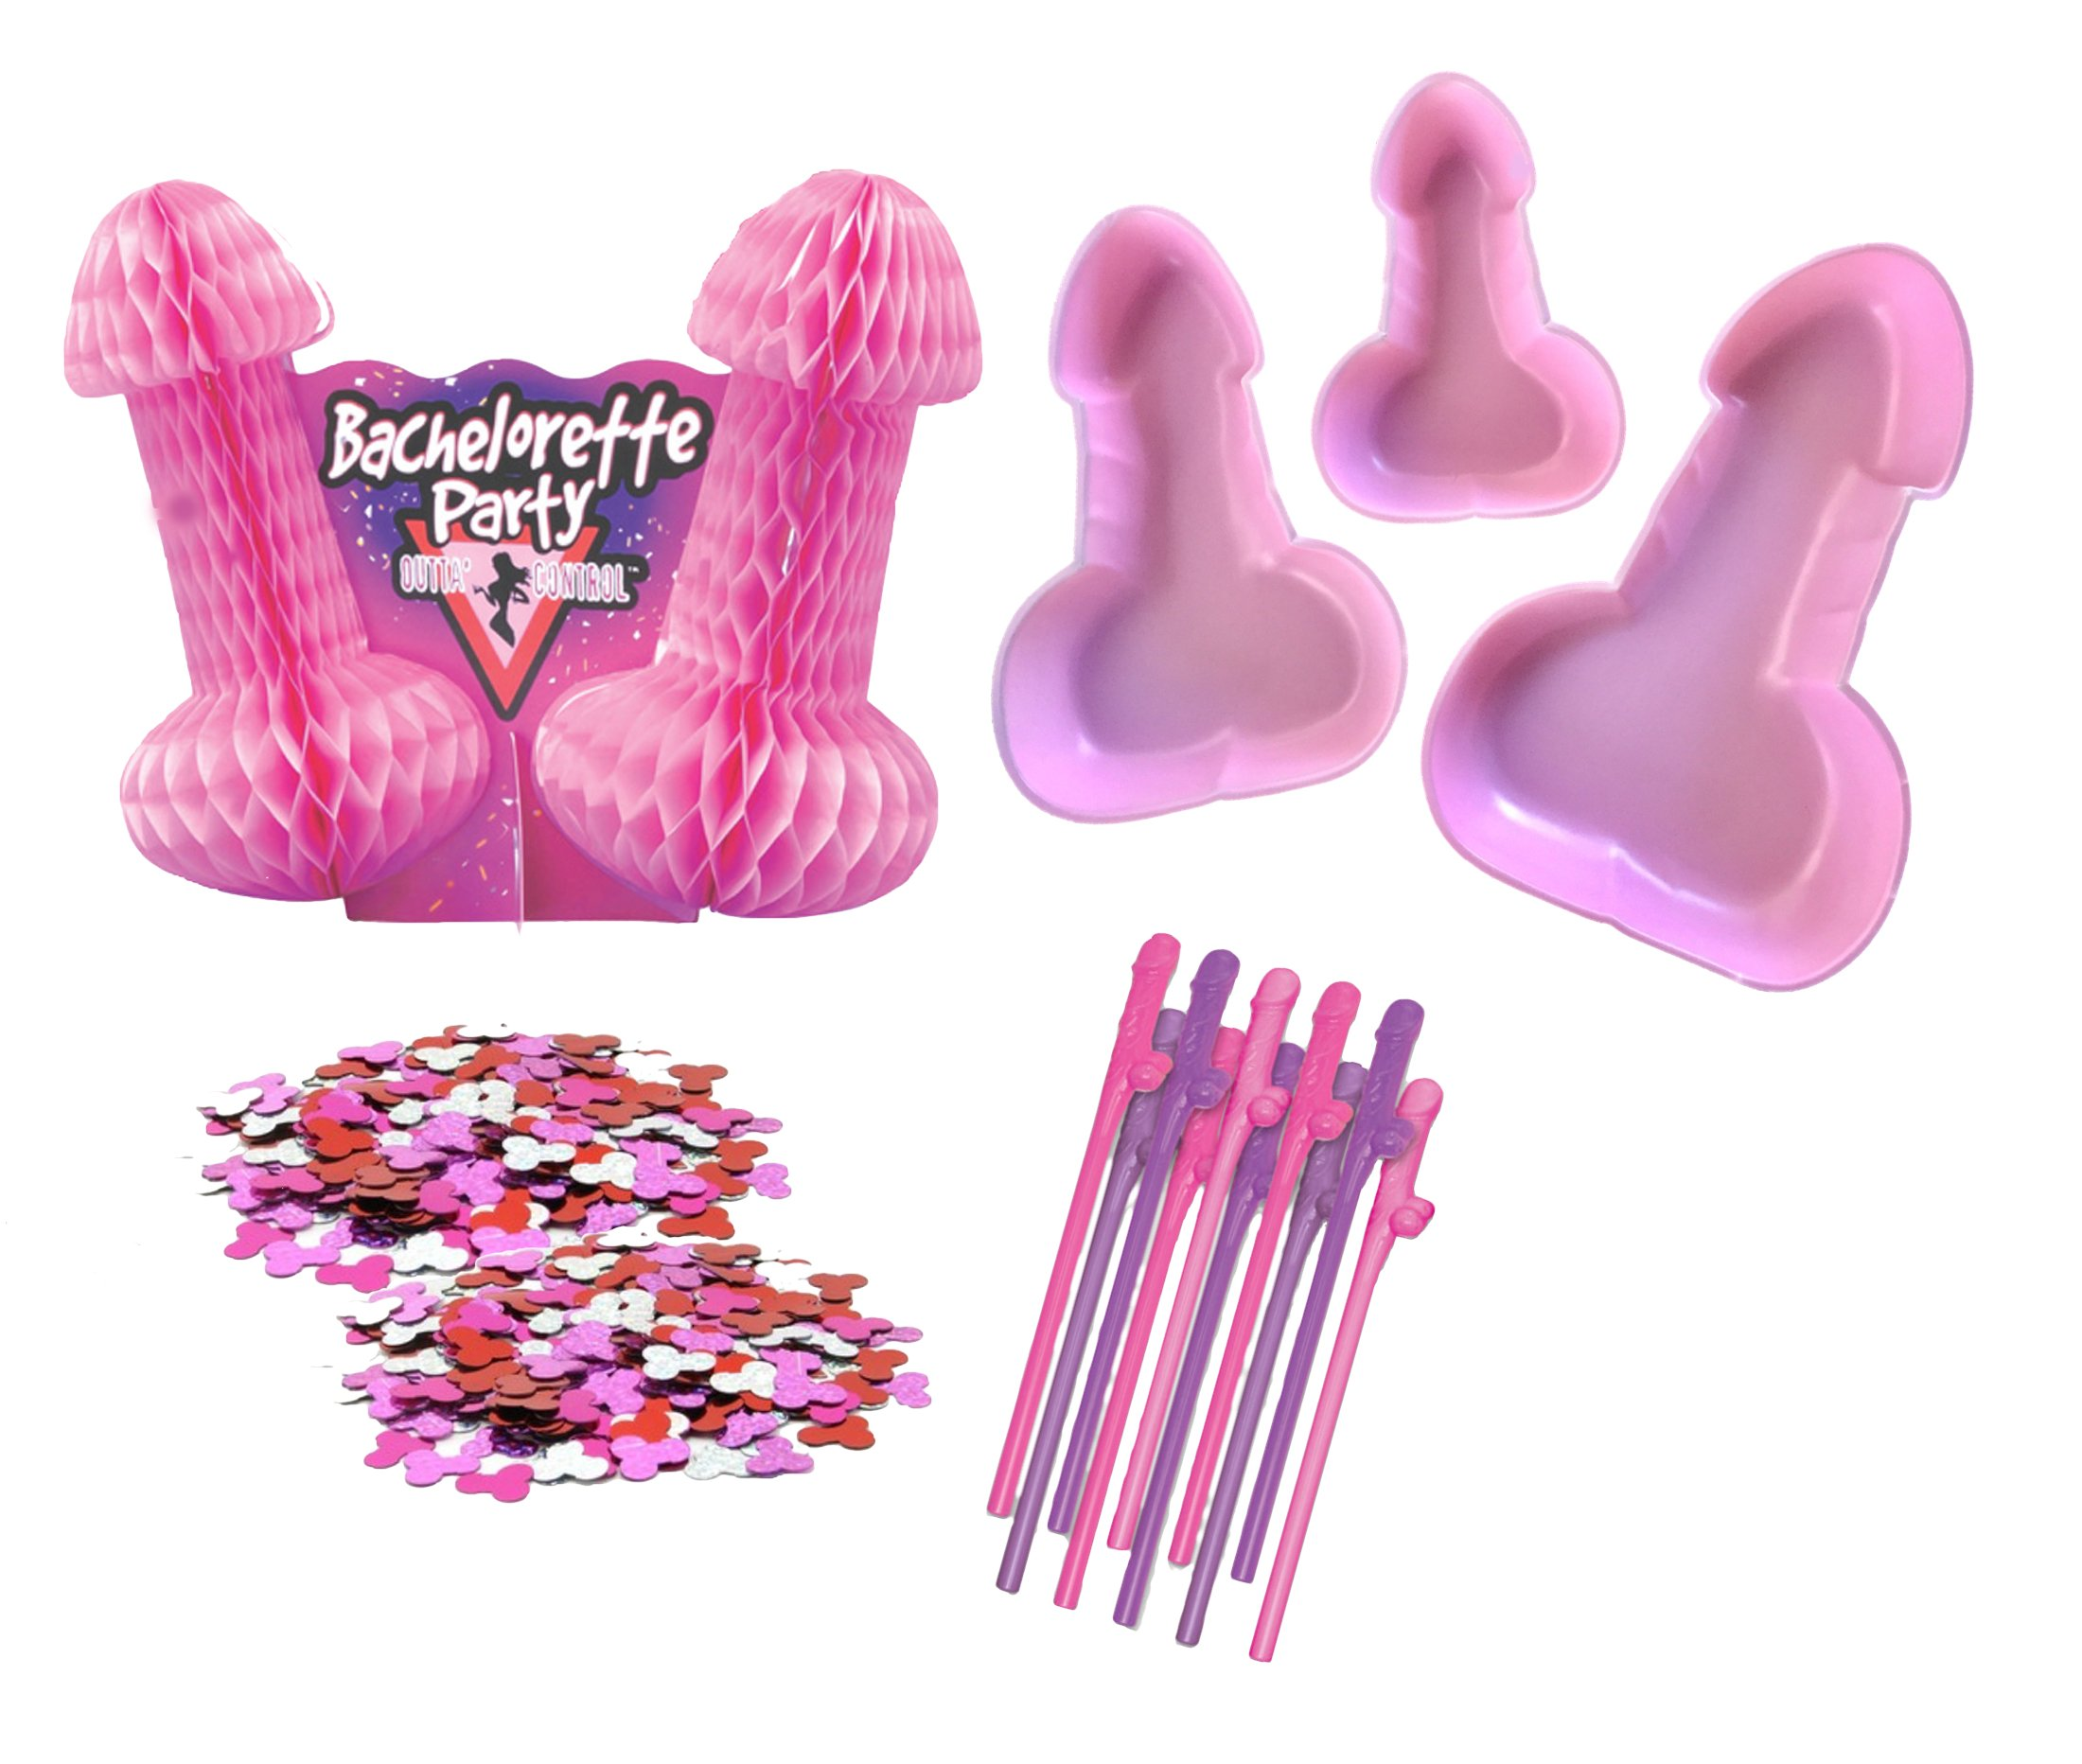 Bachelorette Party Supplies Kit - Penis Straws, Pecker Trays, Willie Confetti, Naughty Centerpiece (15 piece) by My Miss Priss